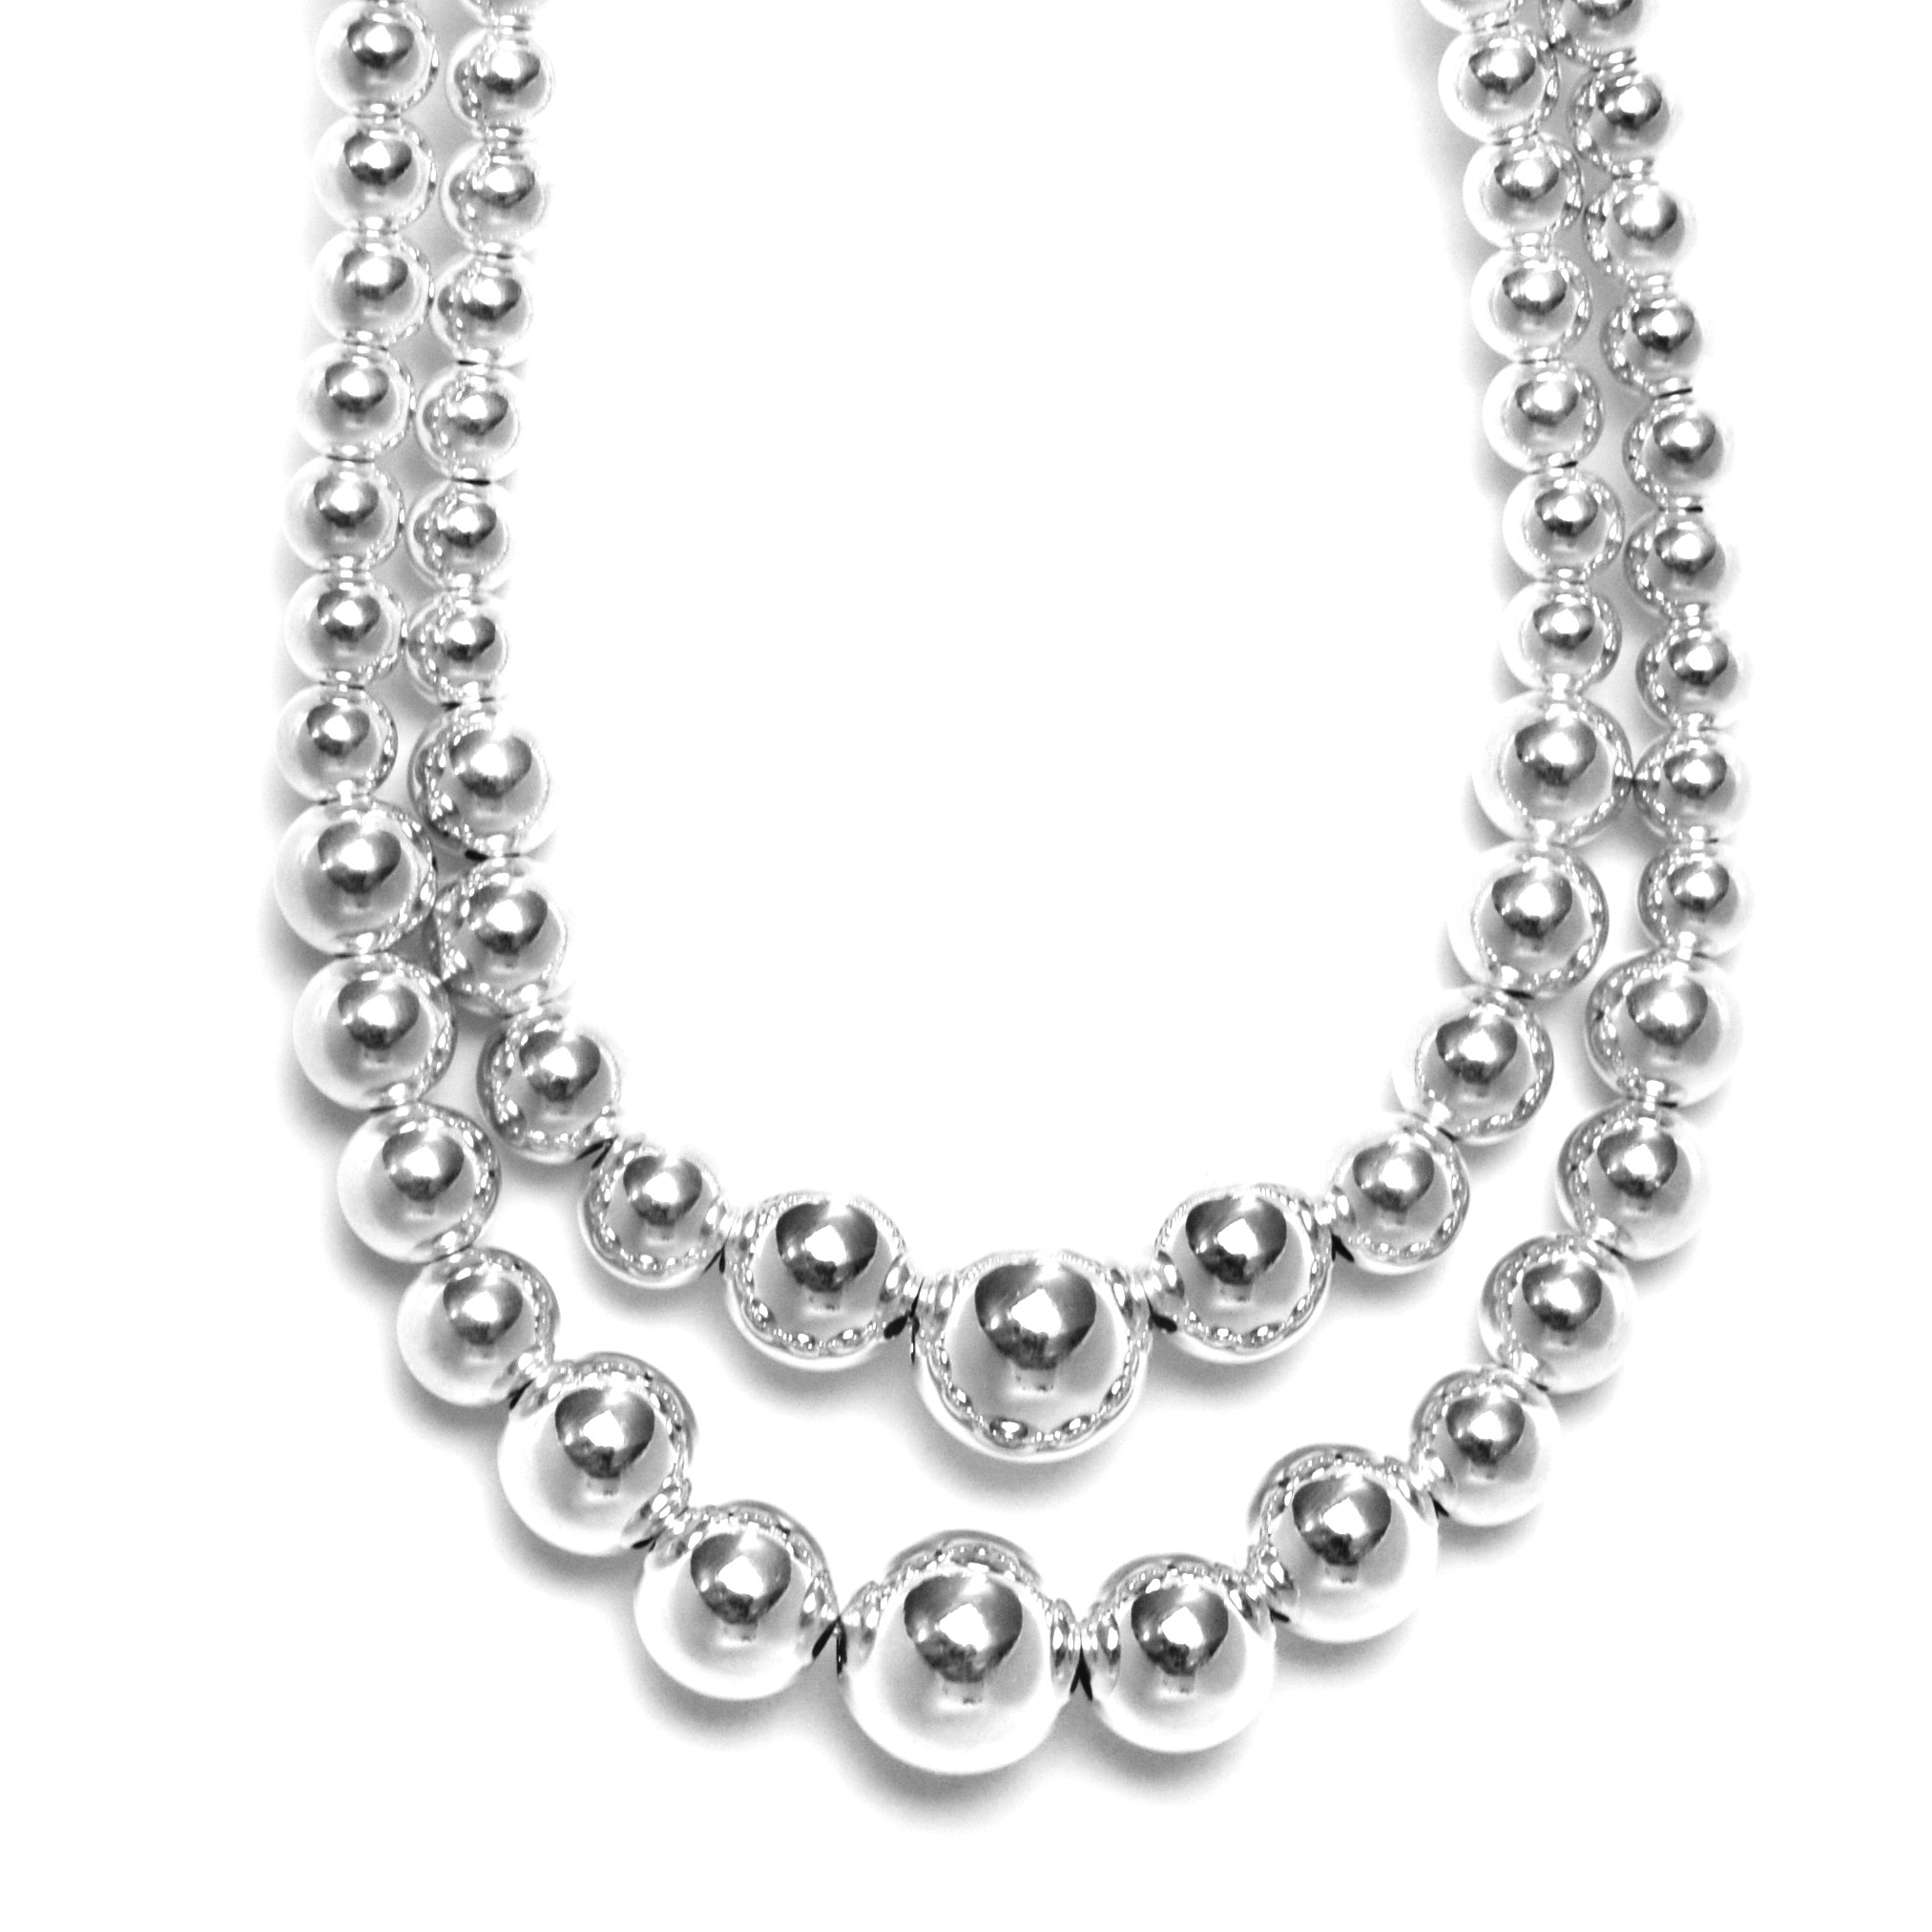 designs silver sterling bead necklace ponderosa product